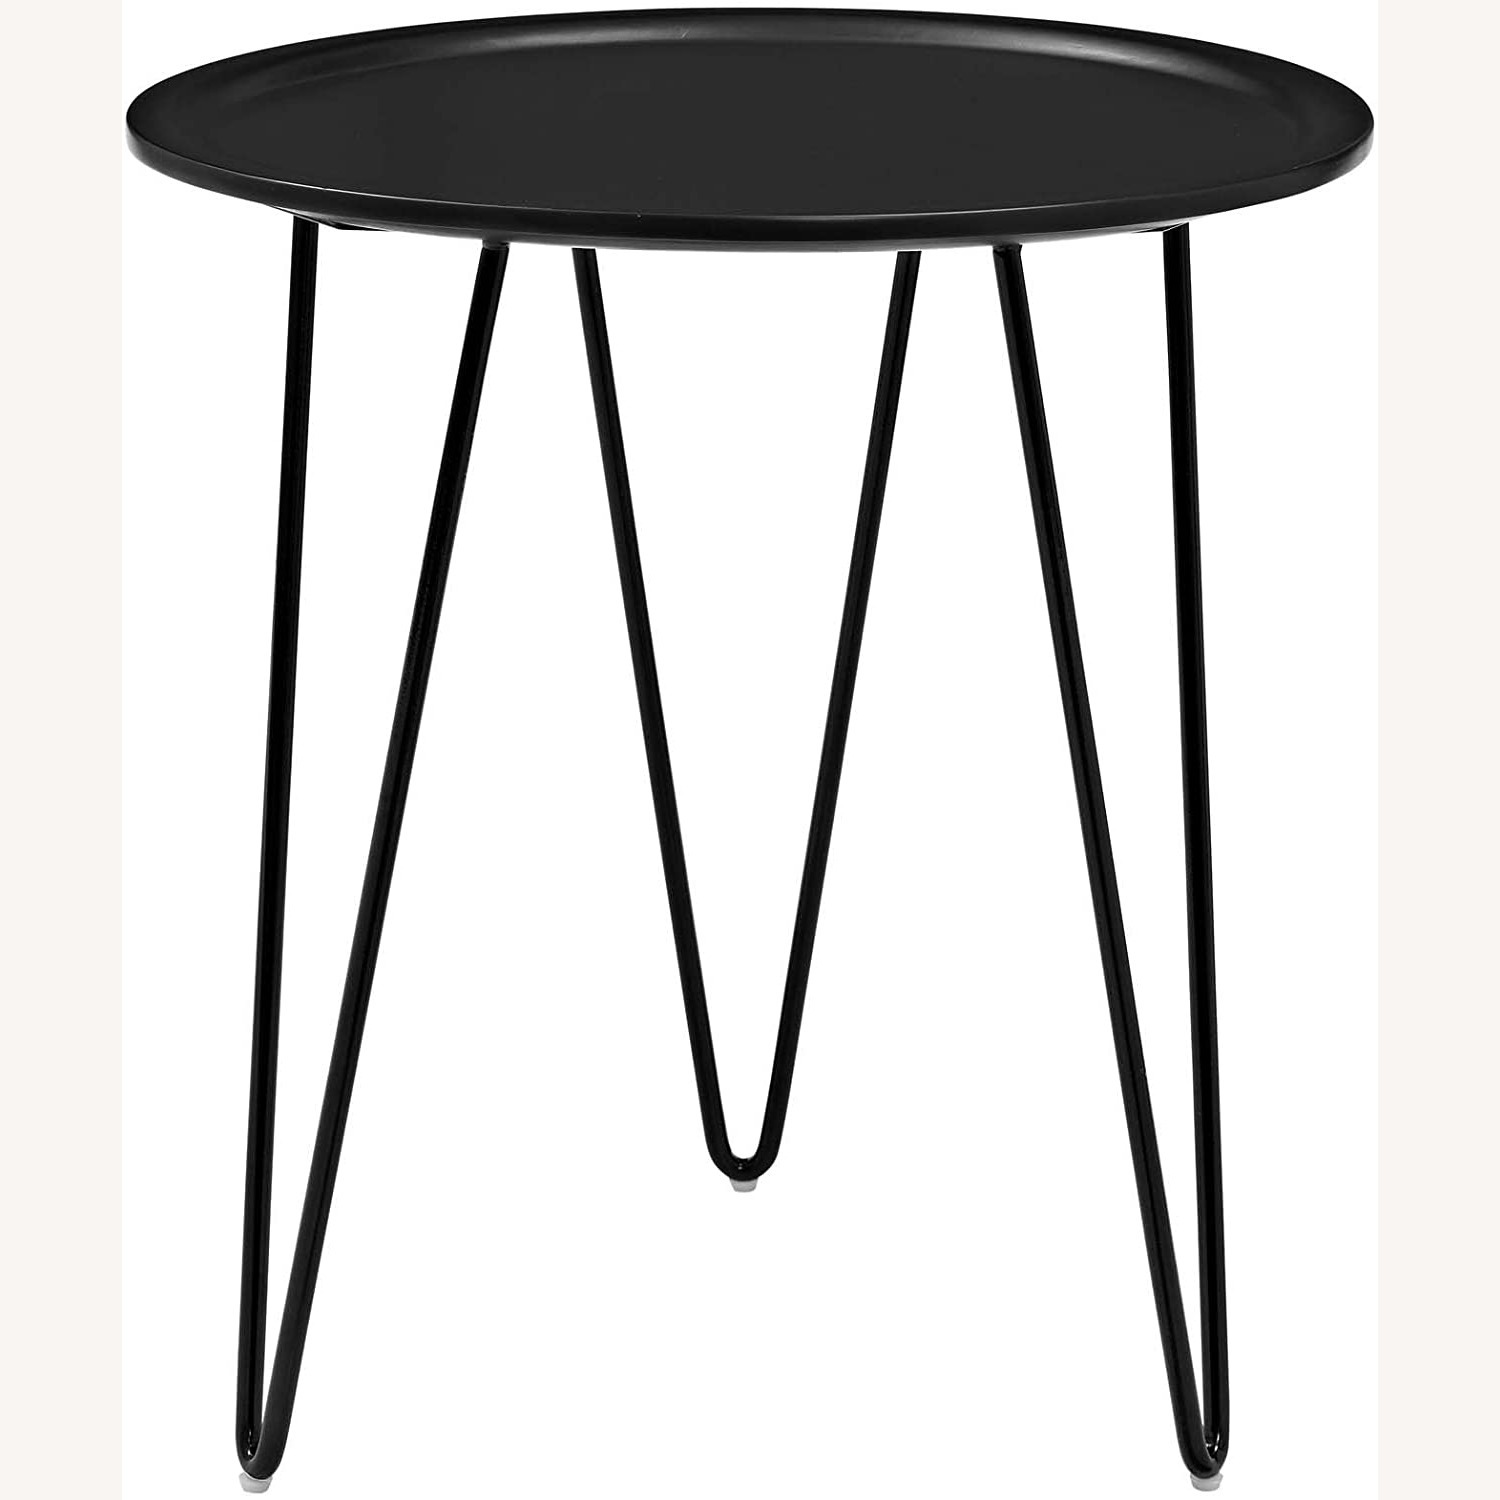 Mid-Century Style Side Table In Black Matte Finish - image-0